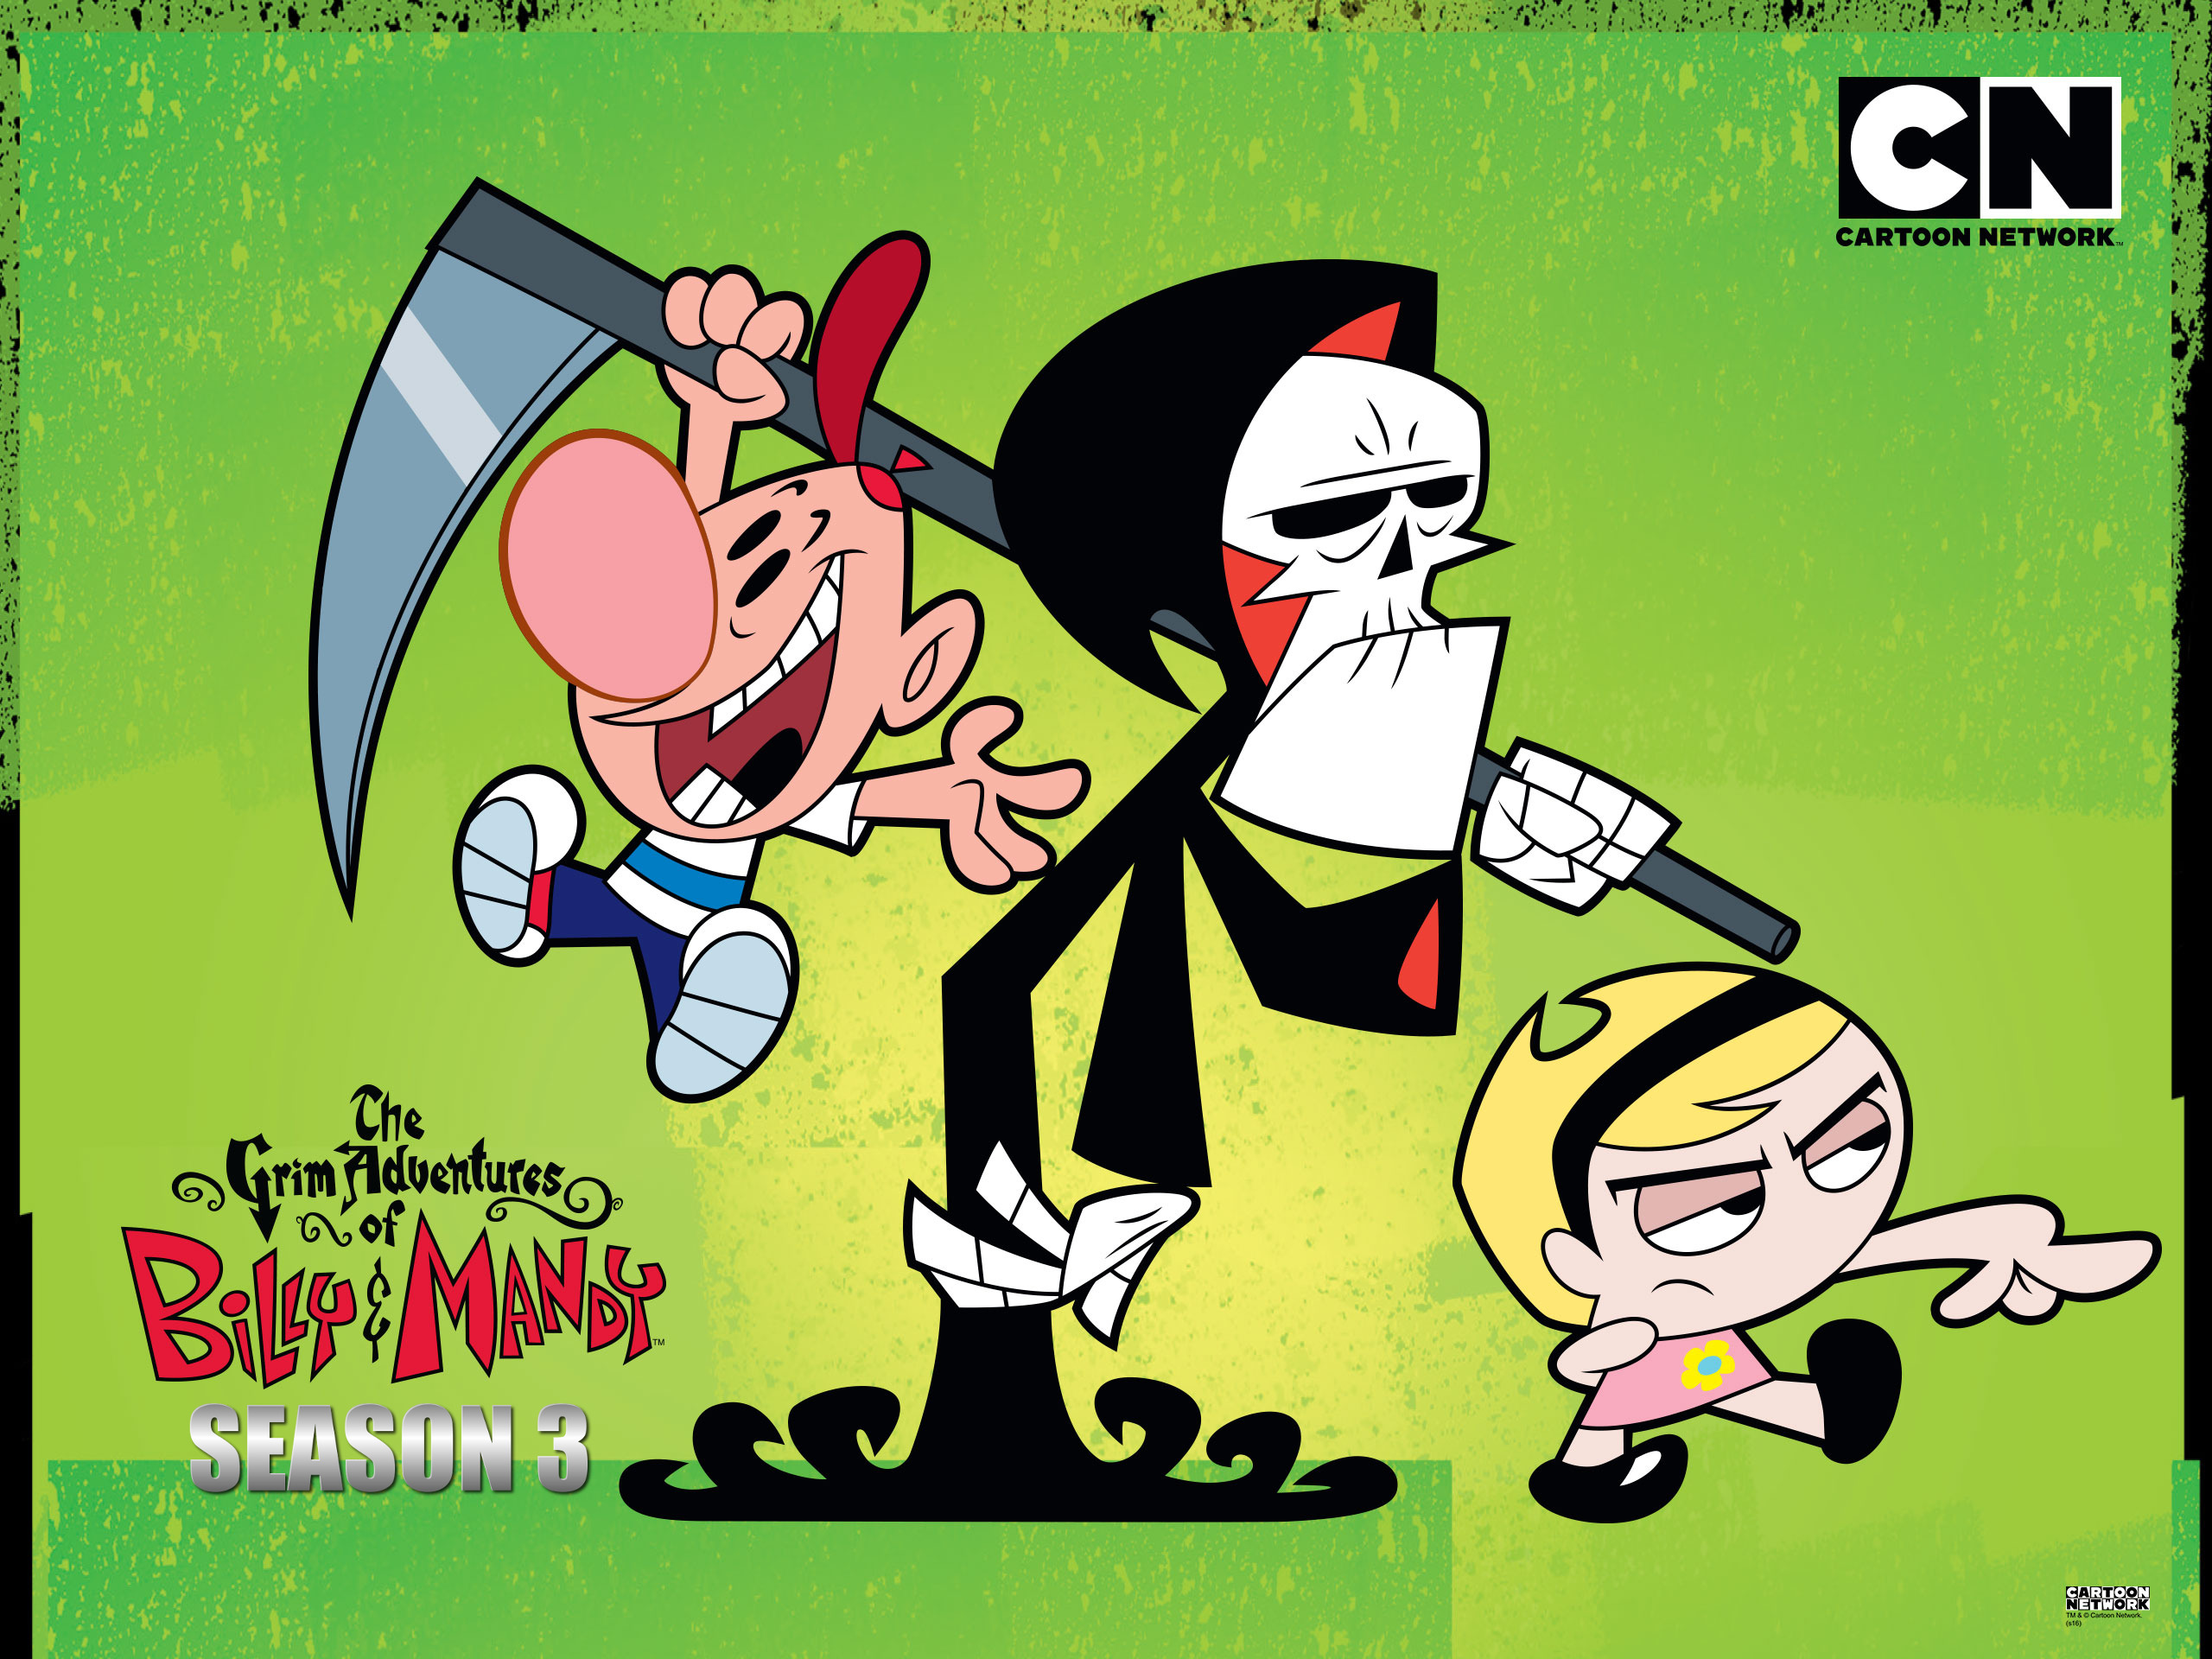 The Grim Adventures of Billy and Mandy Cartoon Network